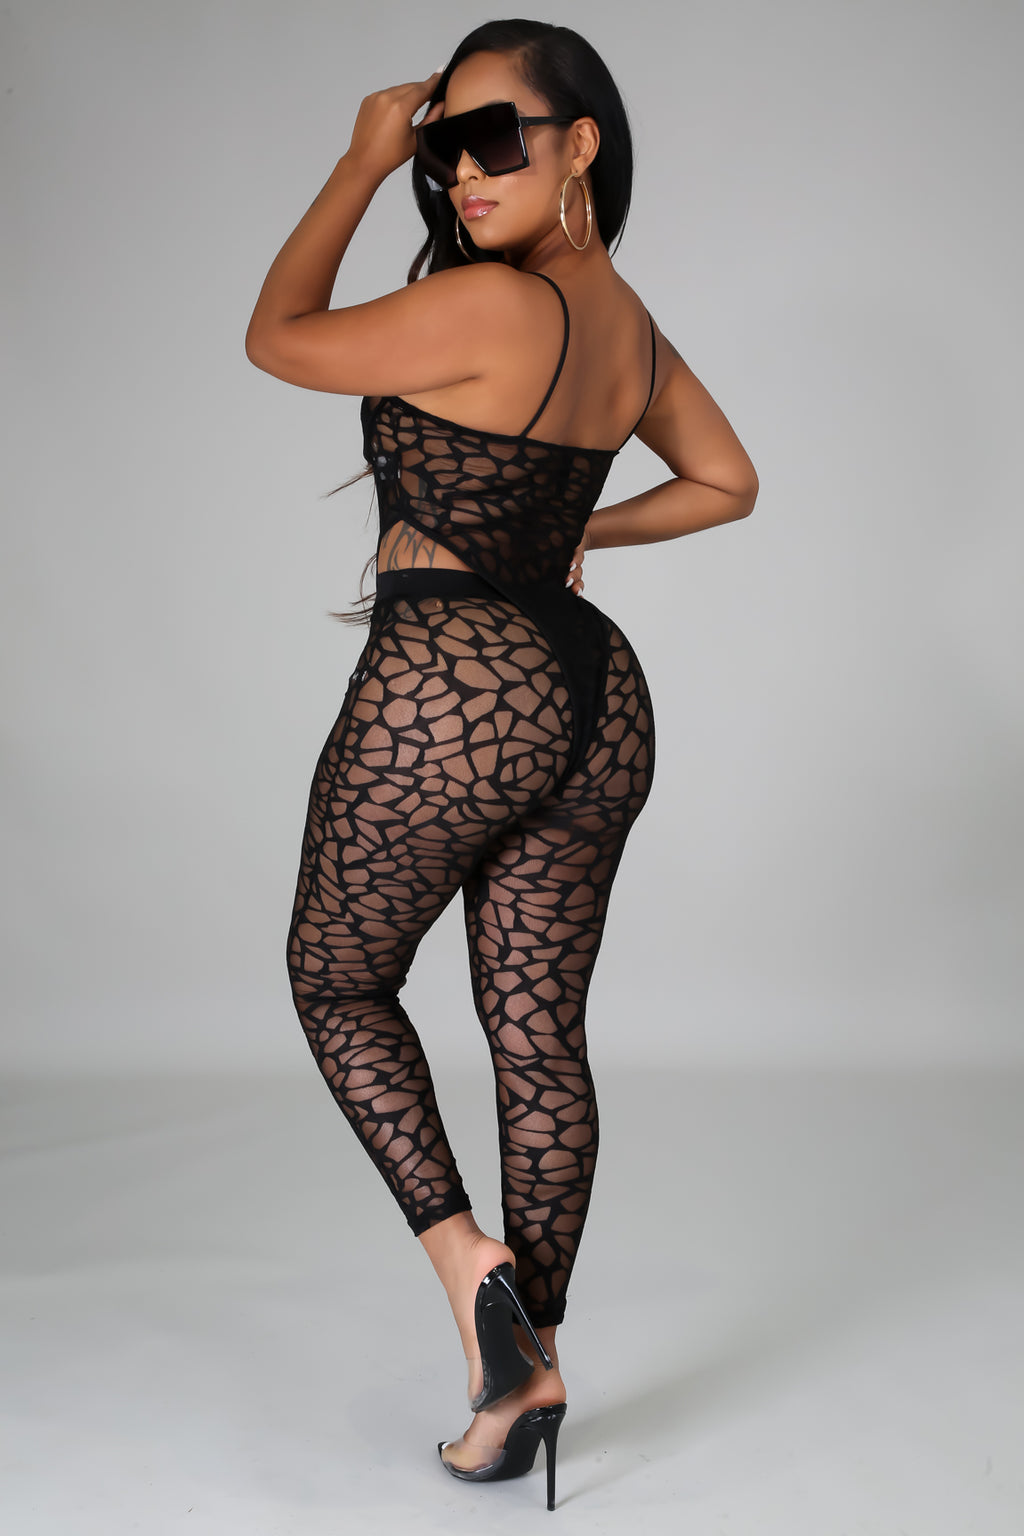 Body Language Bodysuit Set